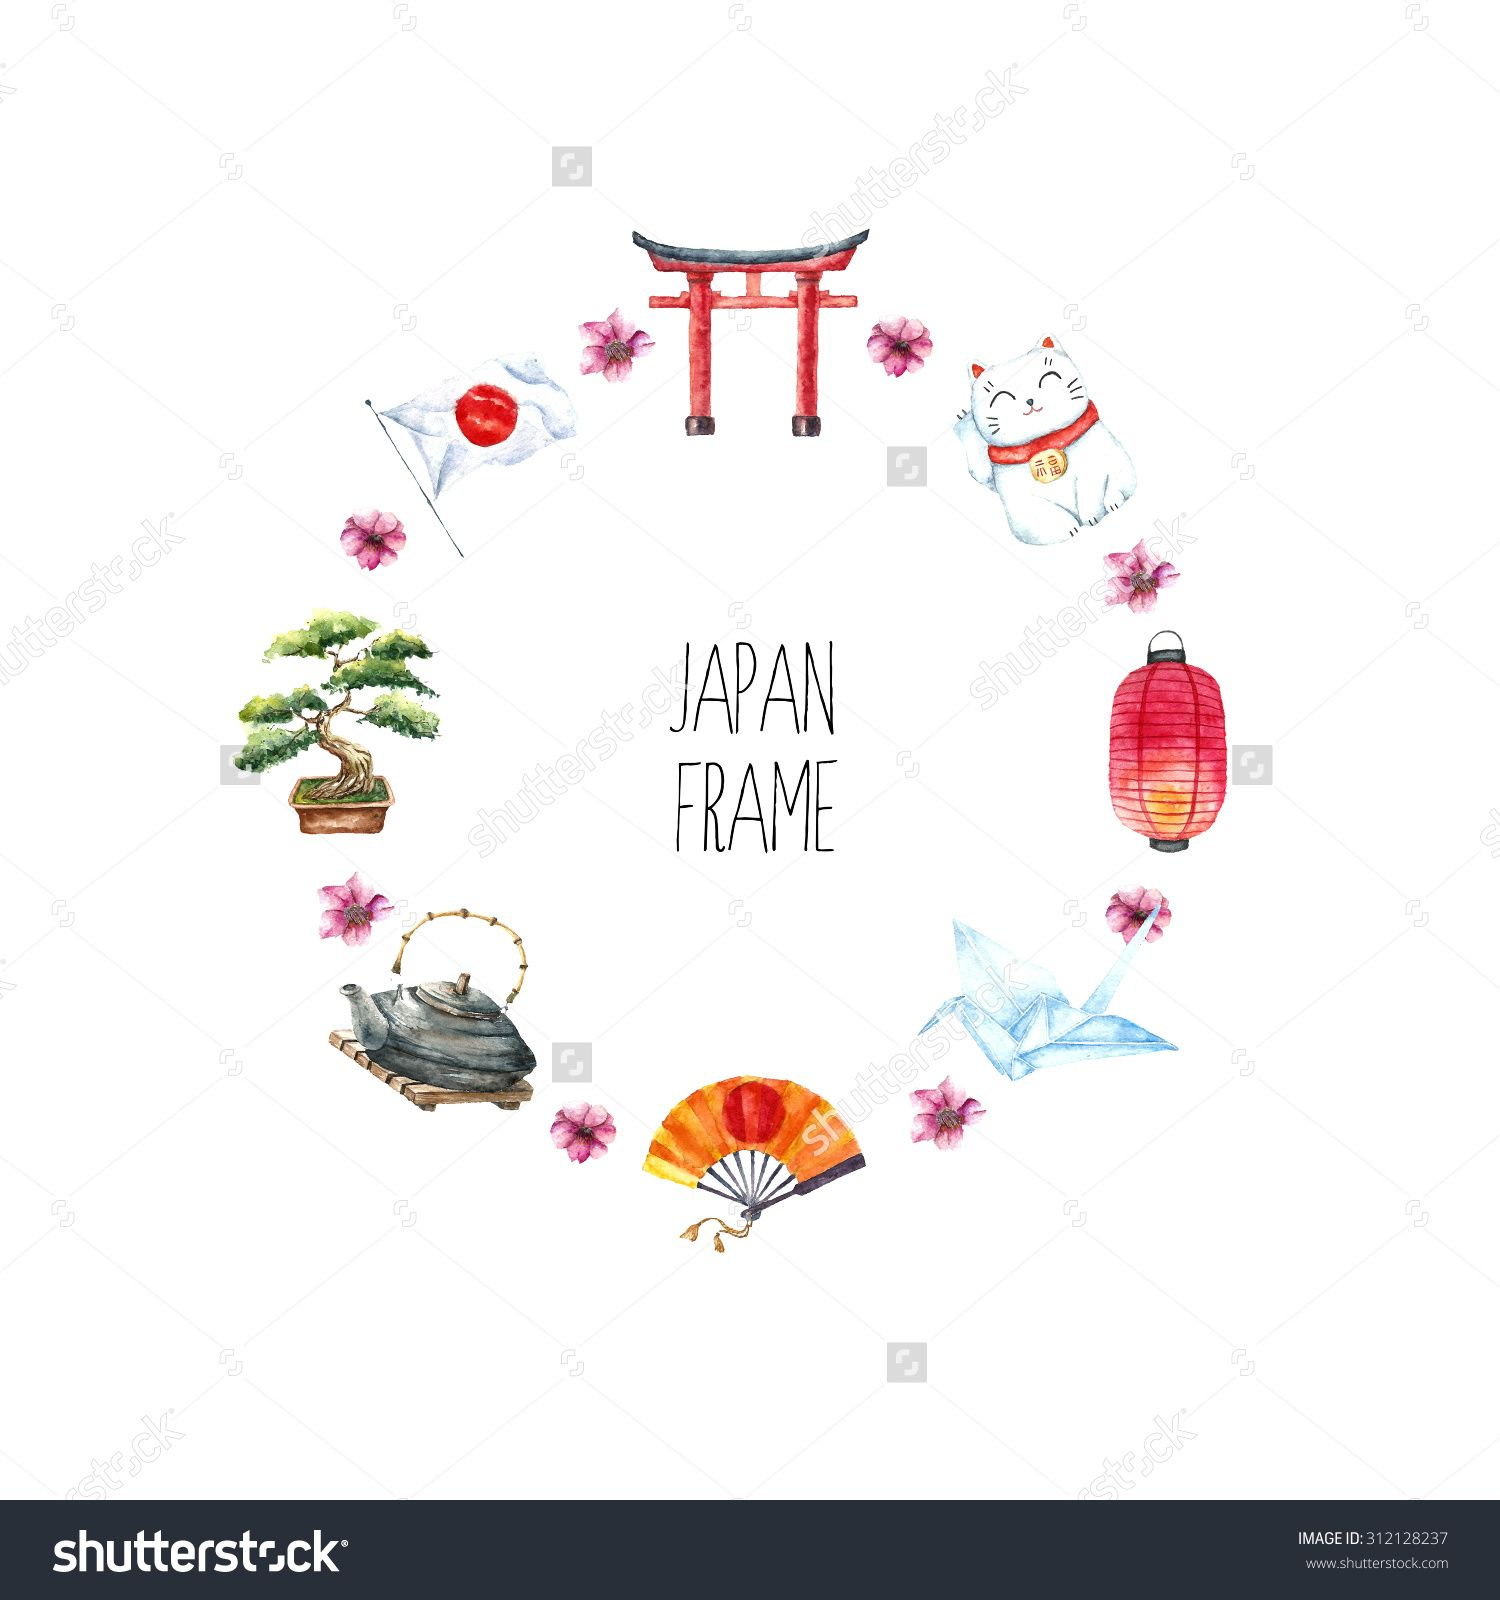 Watercolor Japanese Frame Round Frame With Hand Draw Japanese